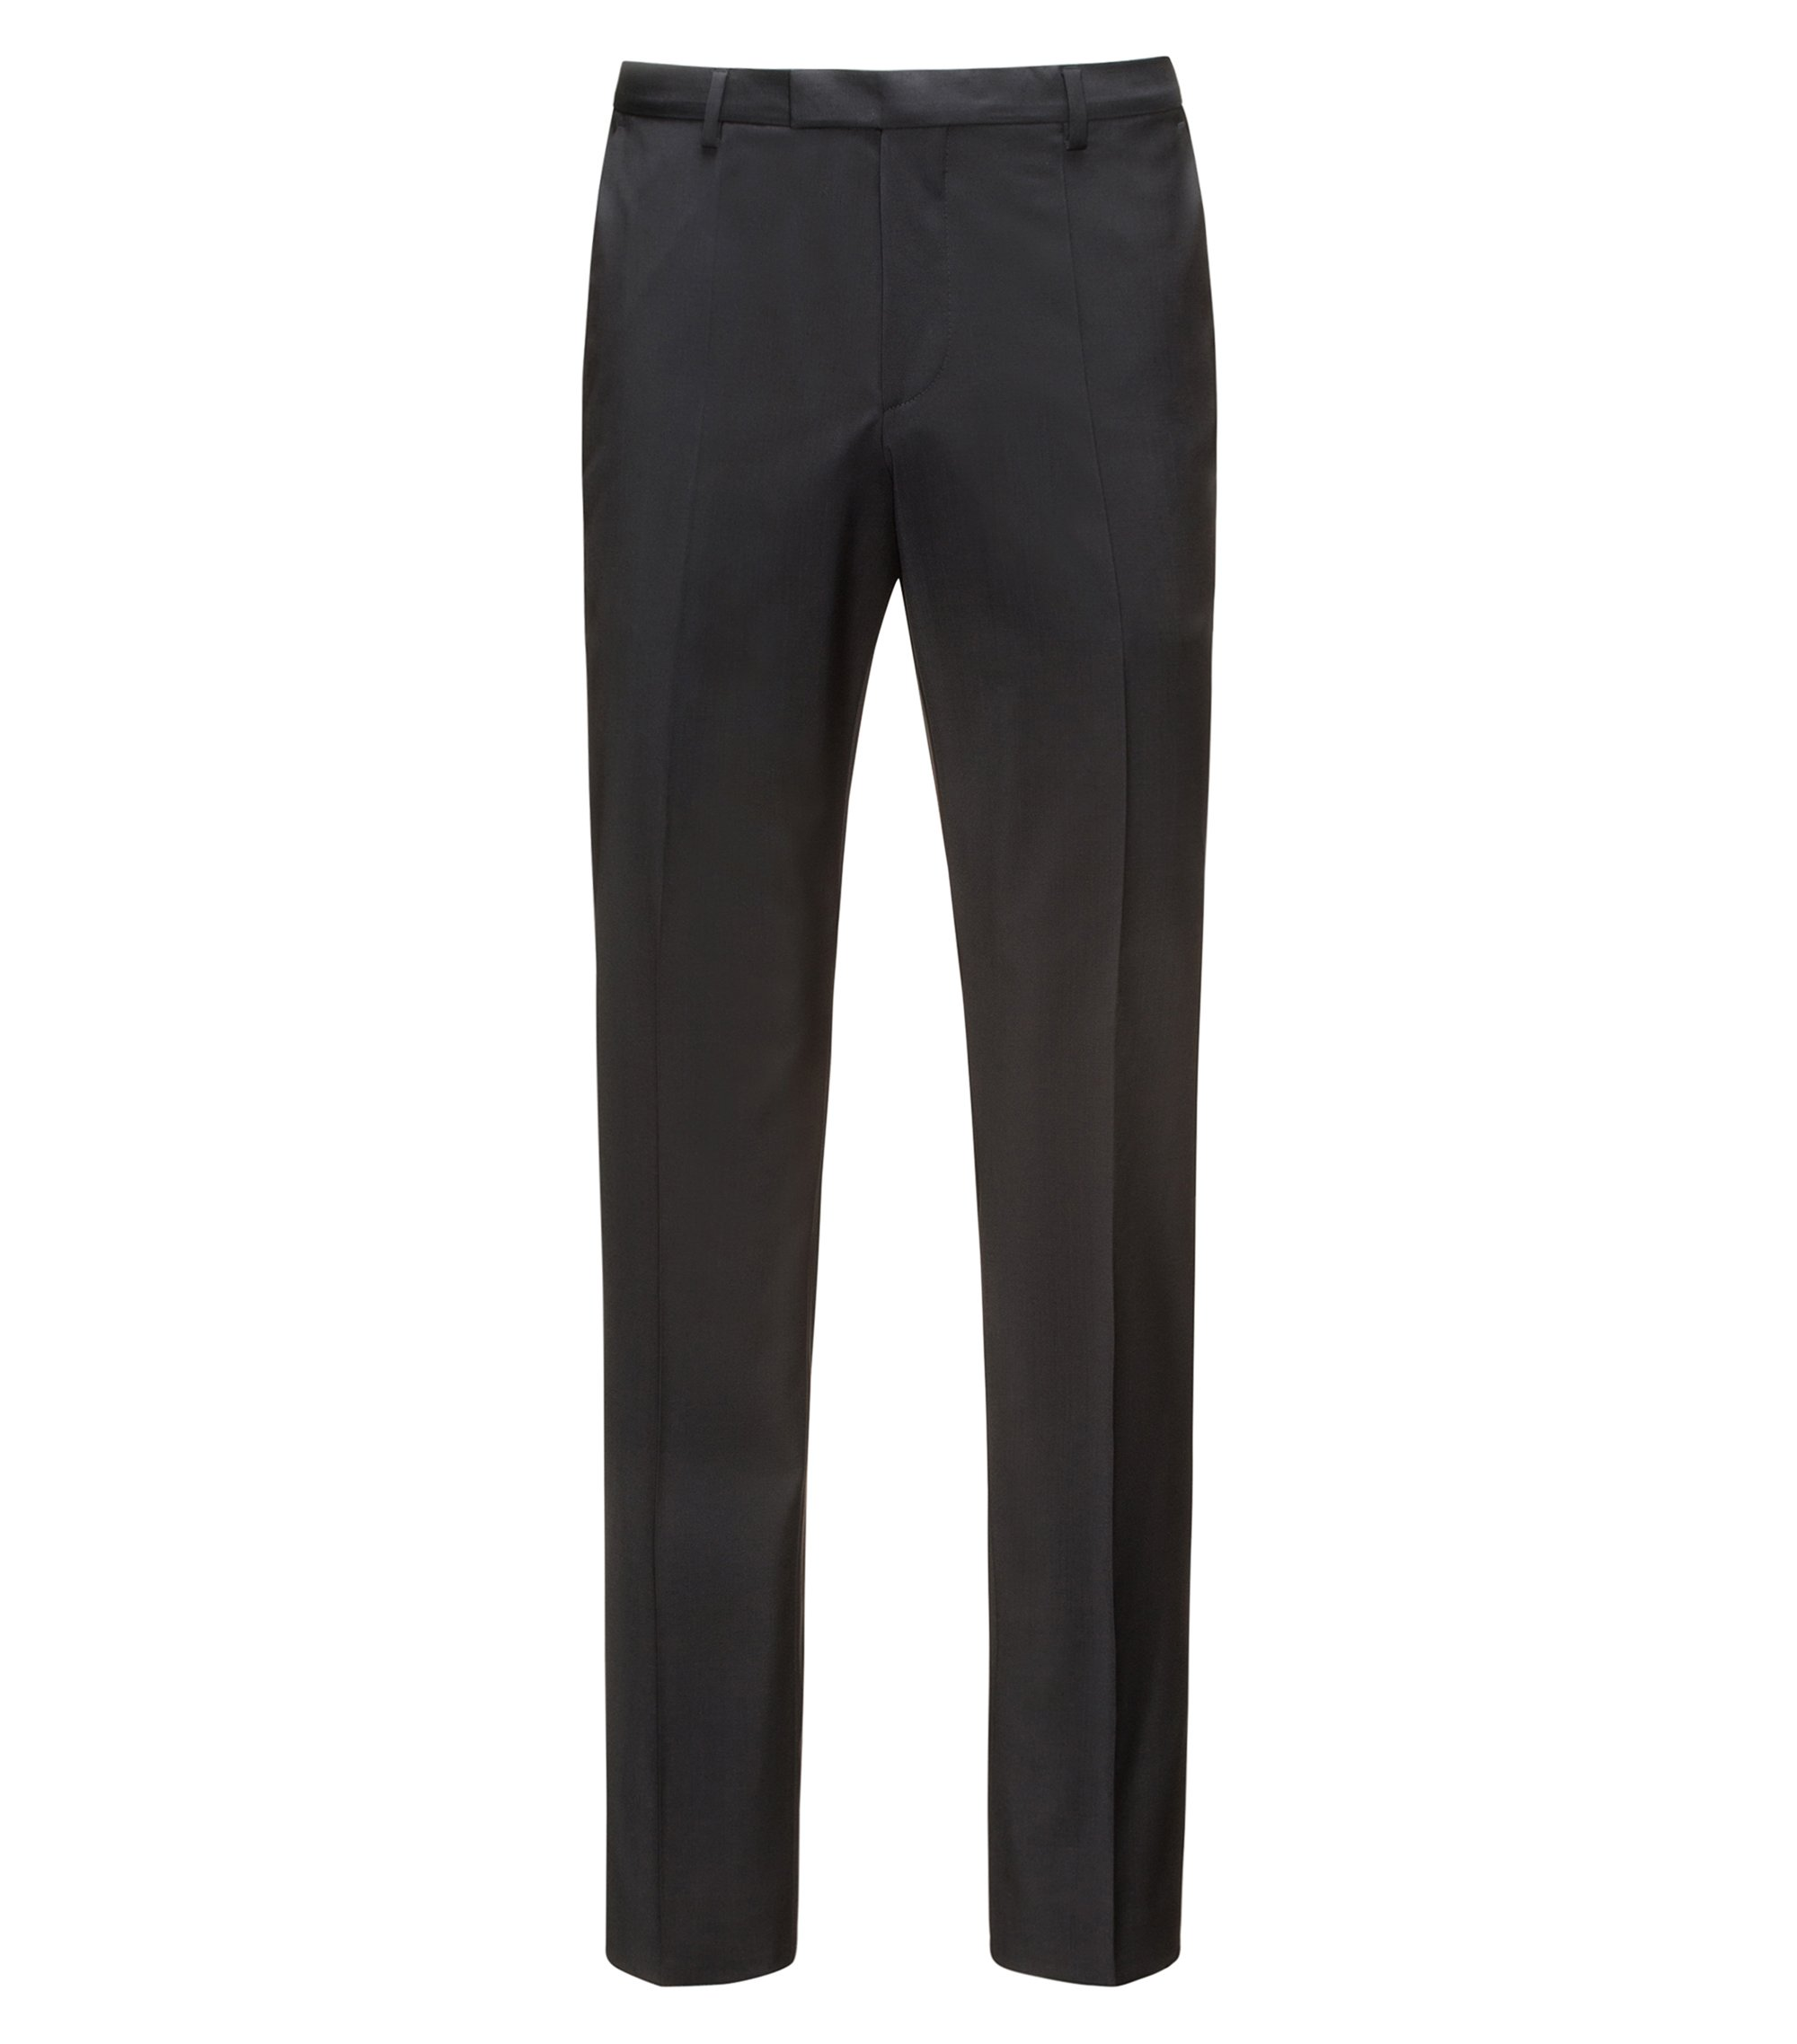 Pantalon Regular Fit en laine vierge , Noir